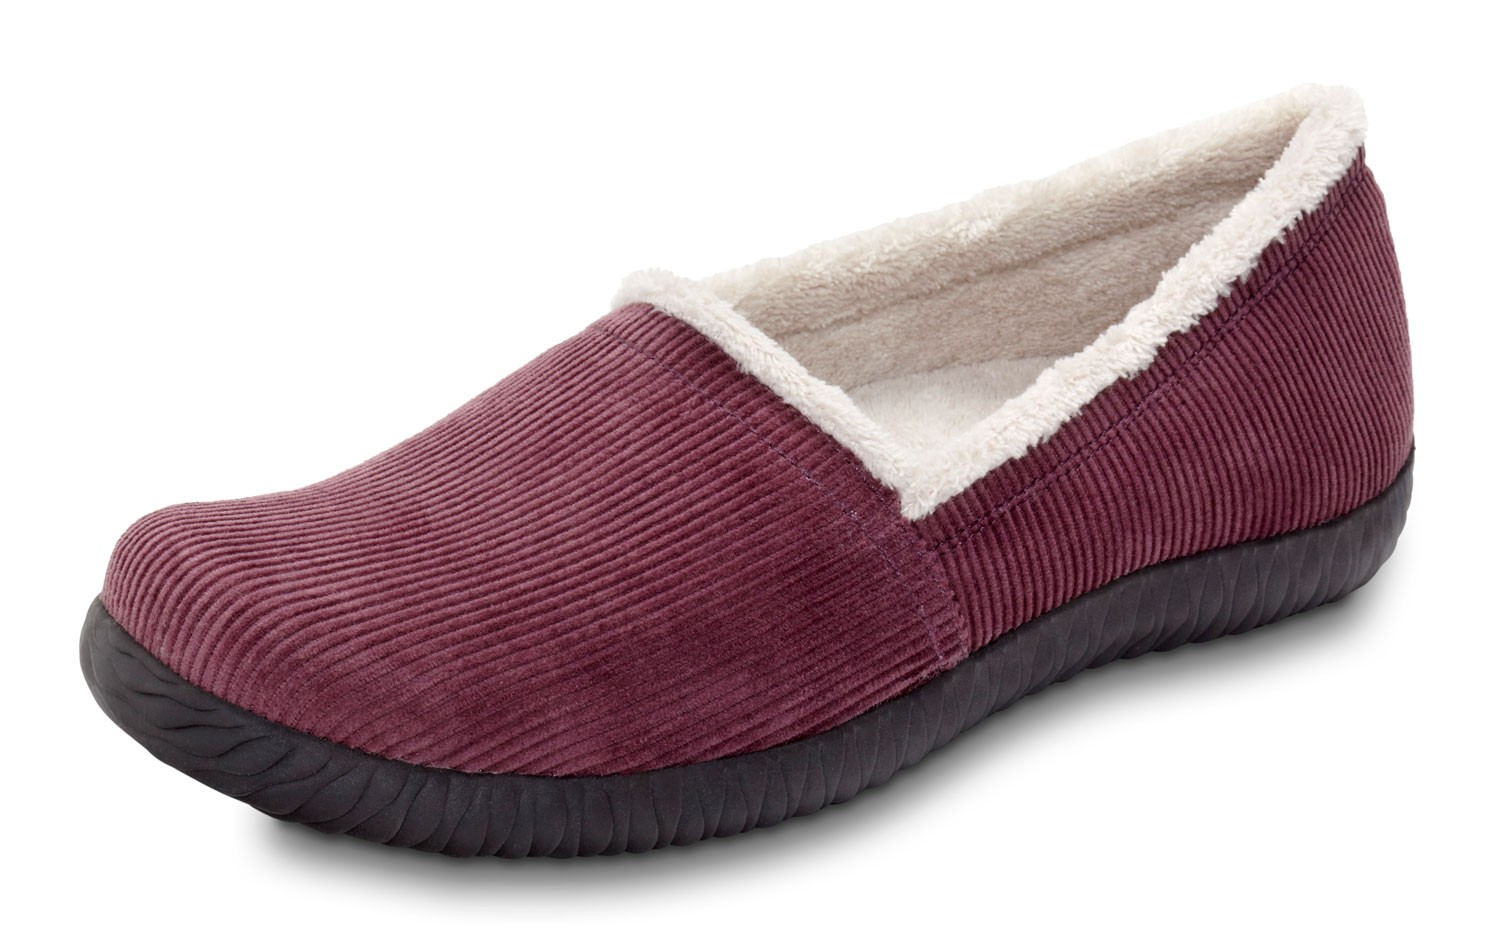 slippers all new slippers for women with arch support